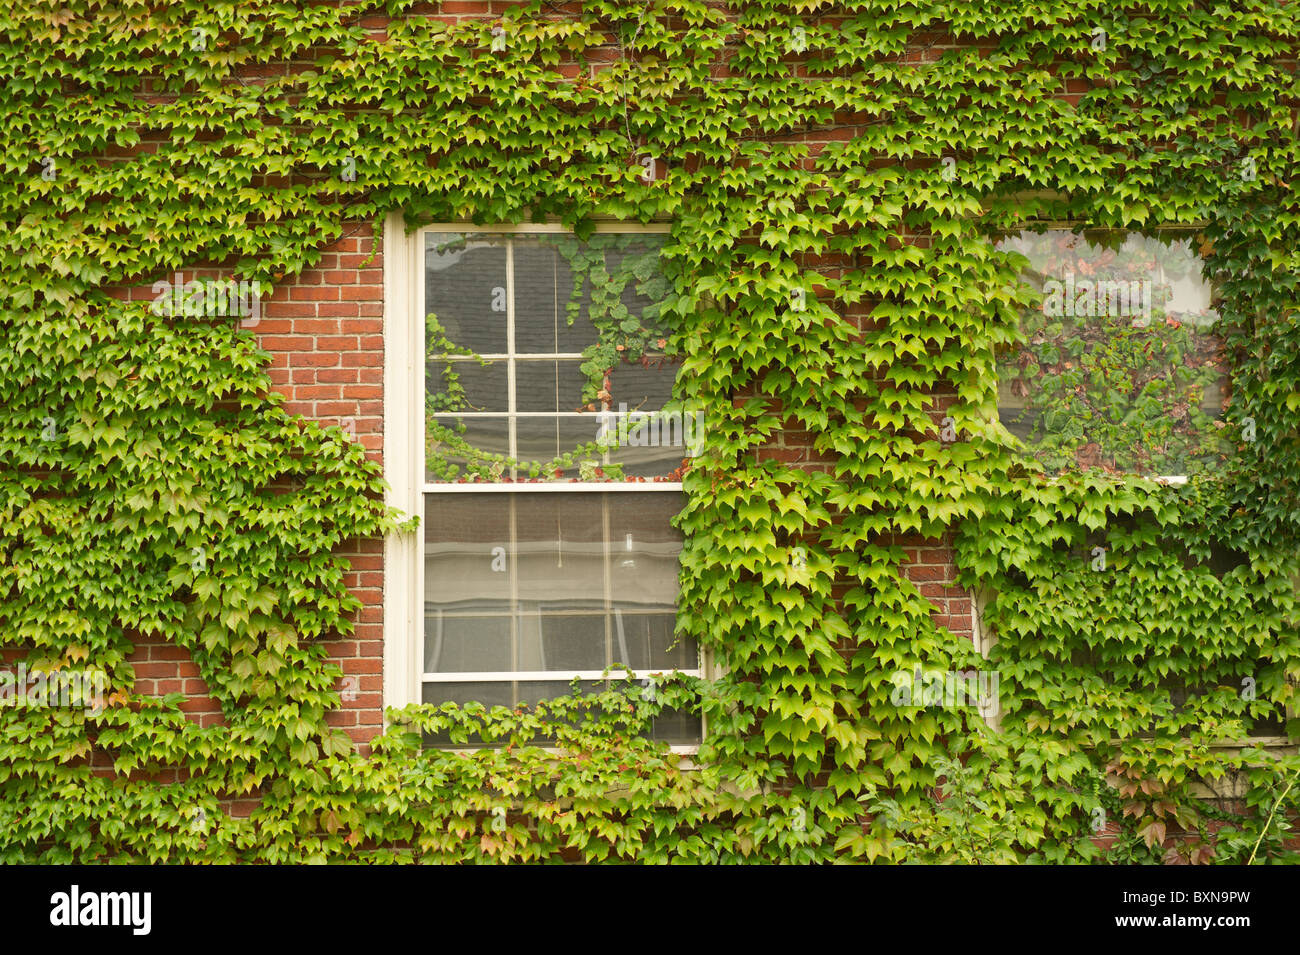 Window covered in ivy - Stock Image